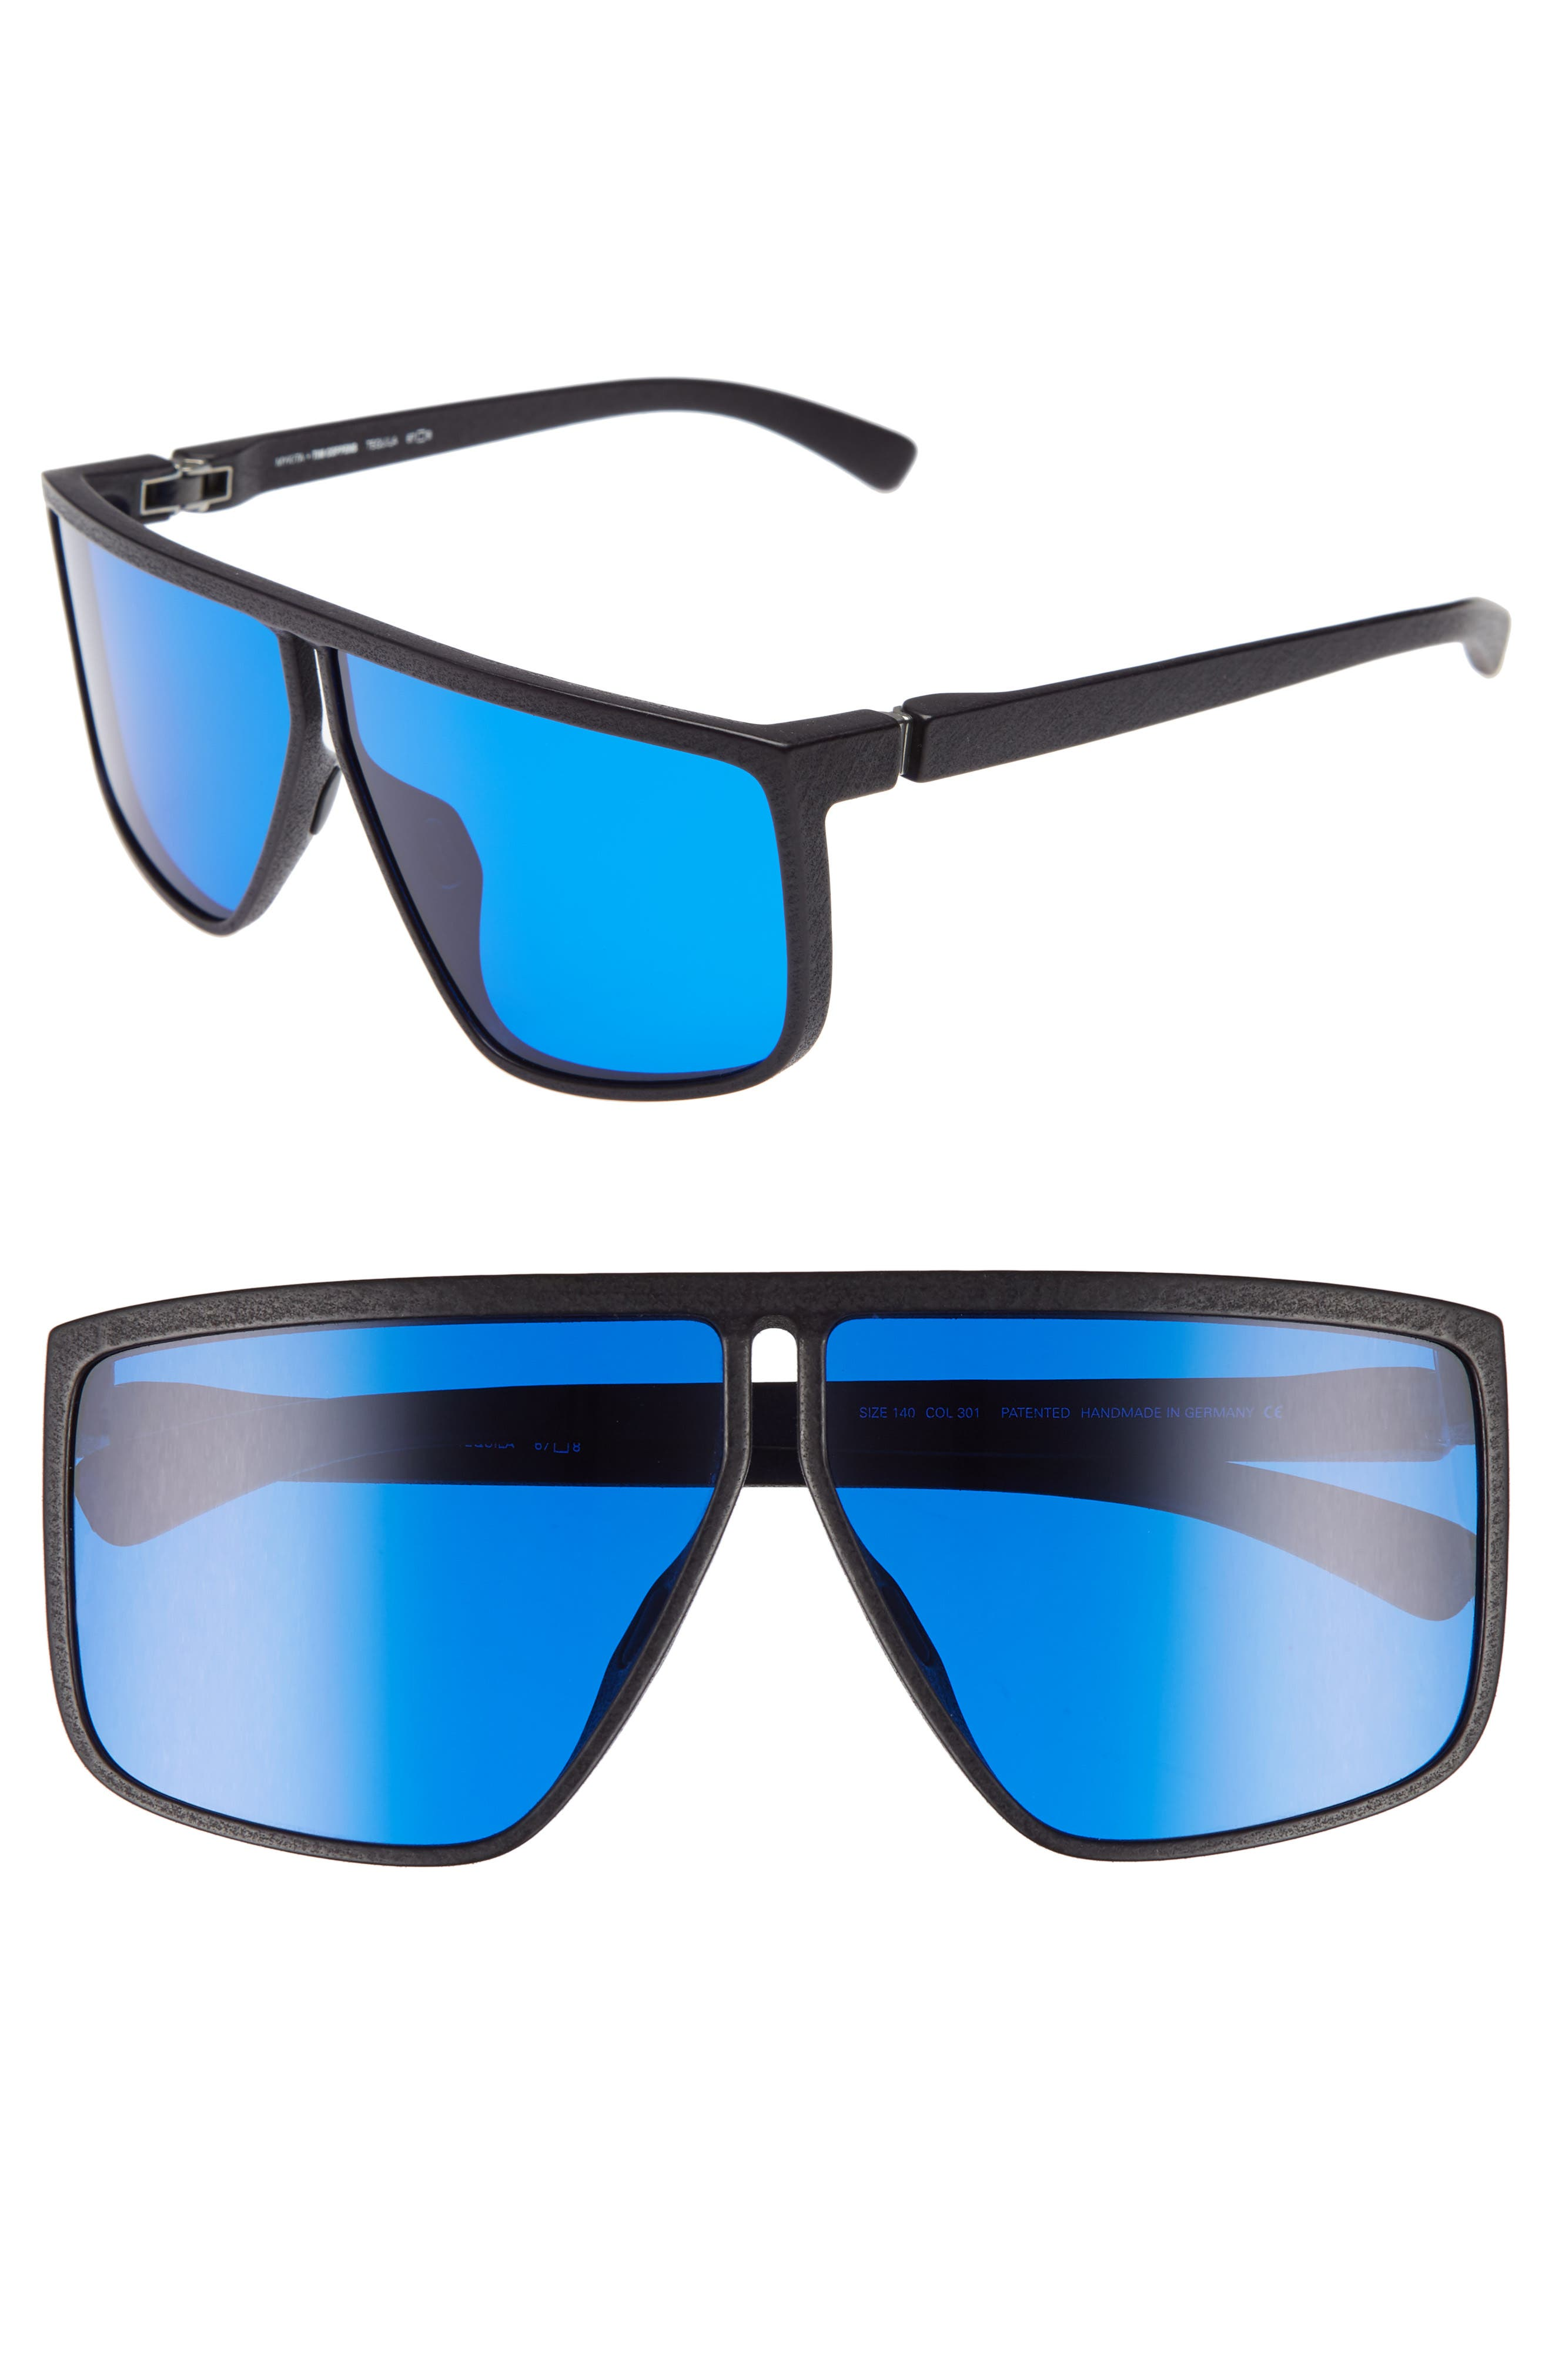 Tequila 67mm Sunglasses,                             Main thumbnail 1, color,                             Pitch Black/ Navy Shield